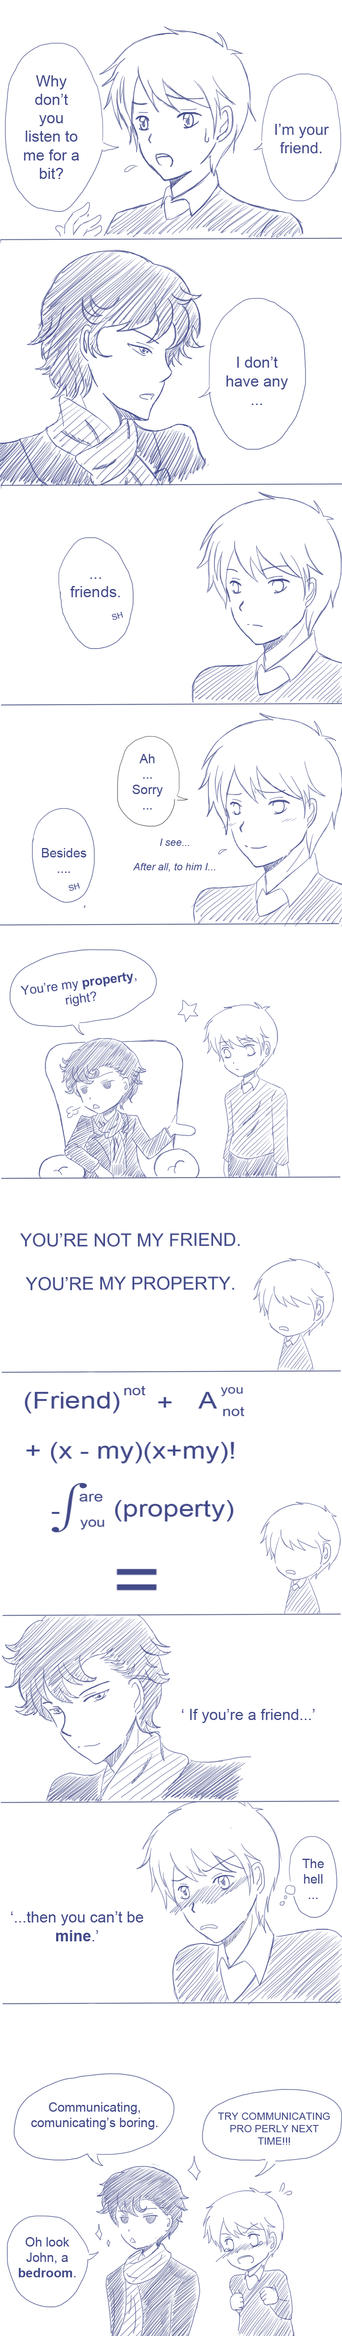 Not a friend by Voidance-kun